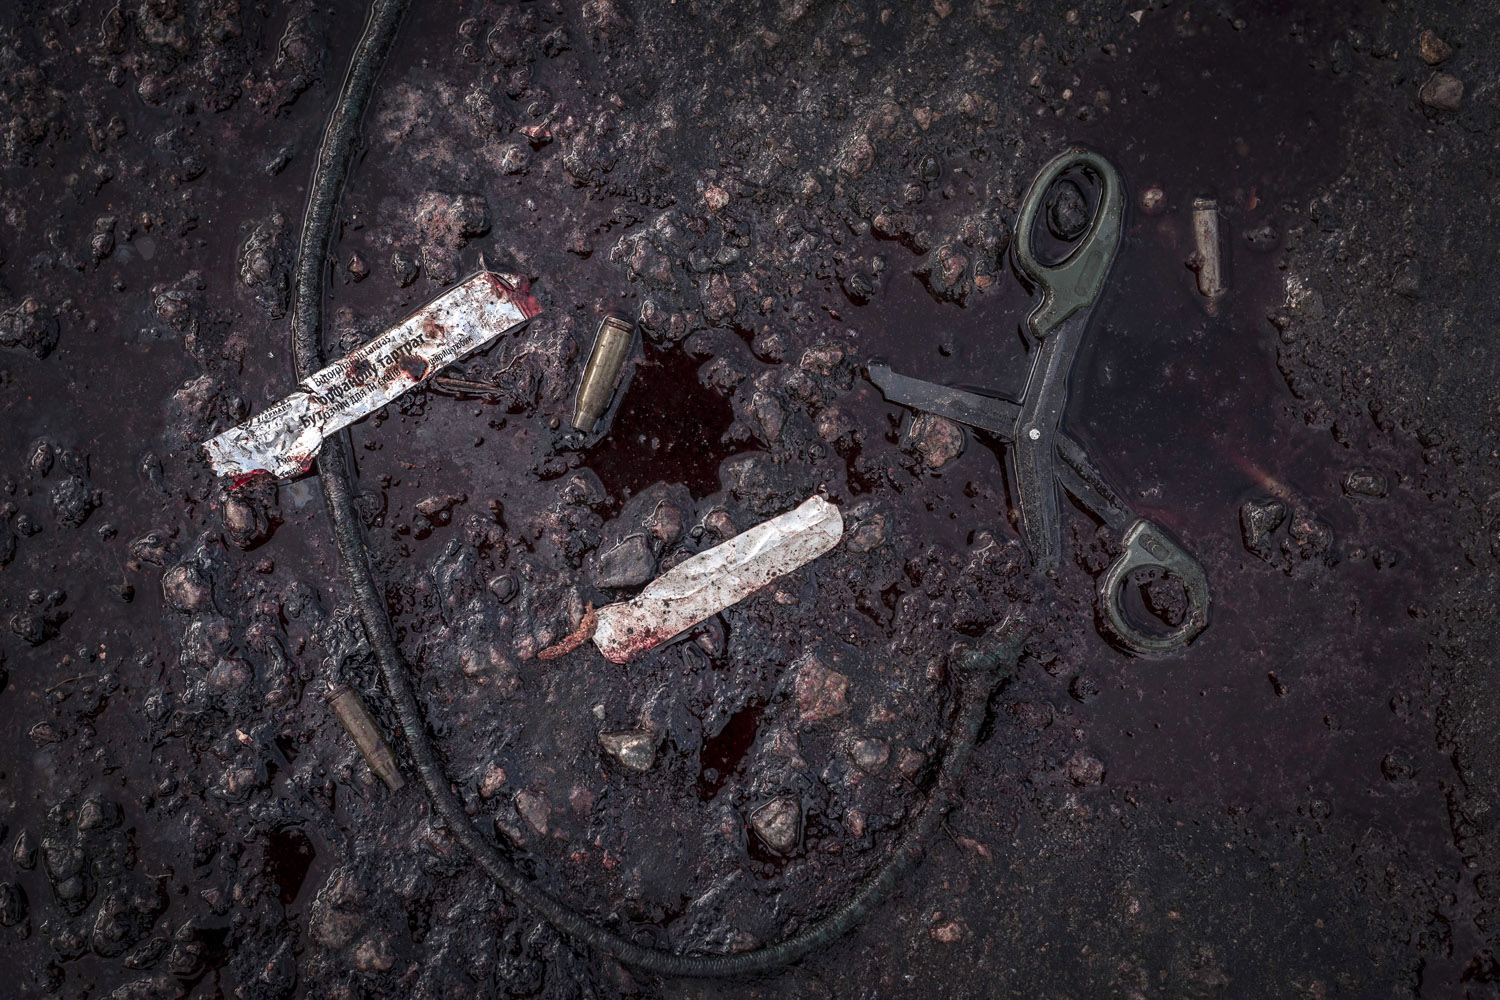 May 5, 2014. Bullet casings, scissors and the wrapper to a tourniquet lie in a puddle of blood on the outskirts of Slovyansk, eastern Ukraine.